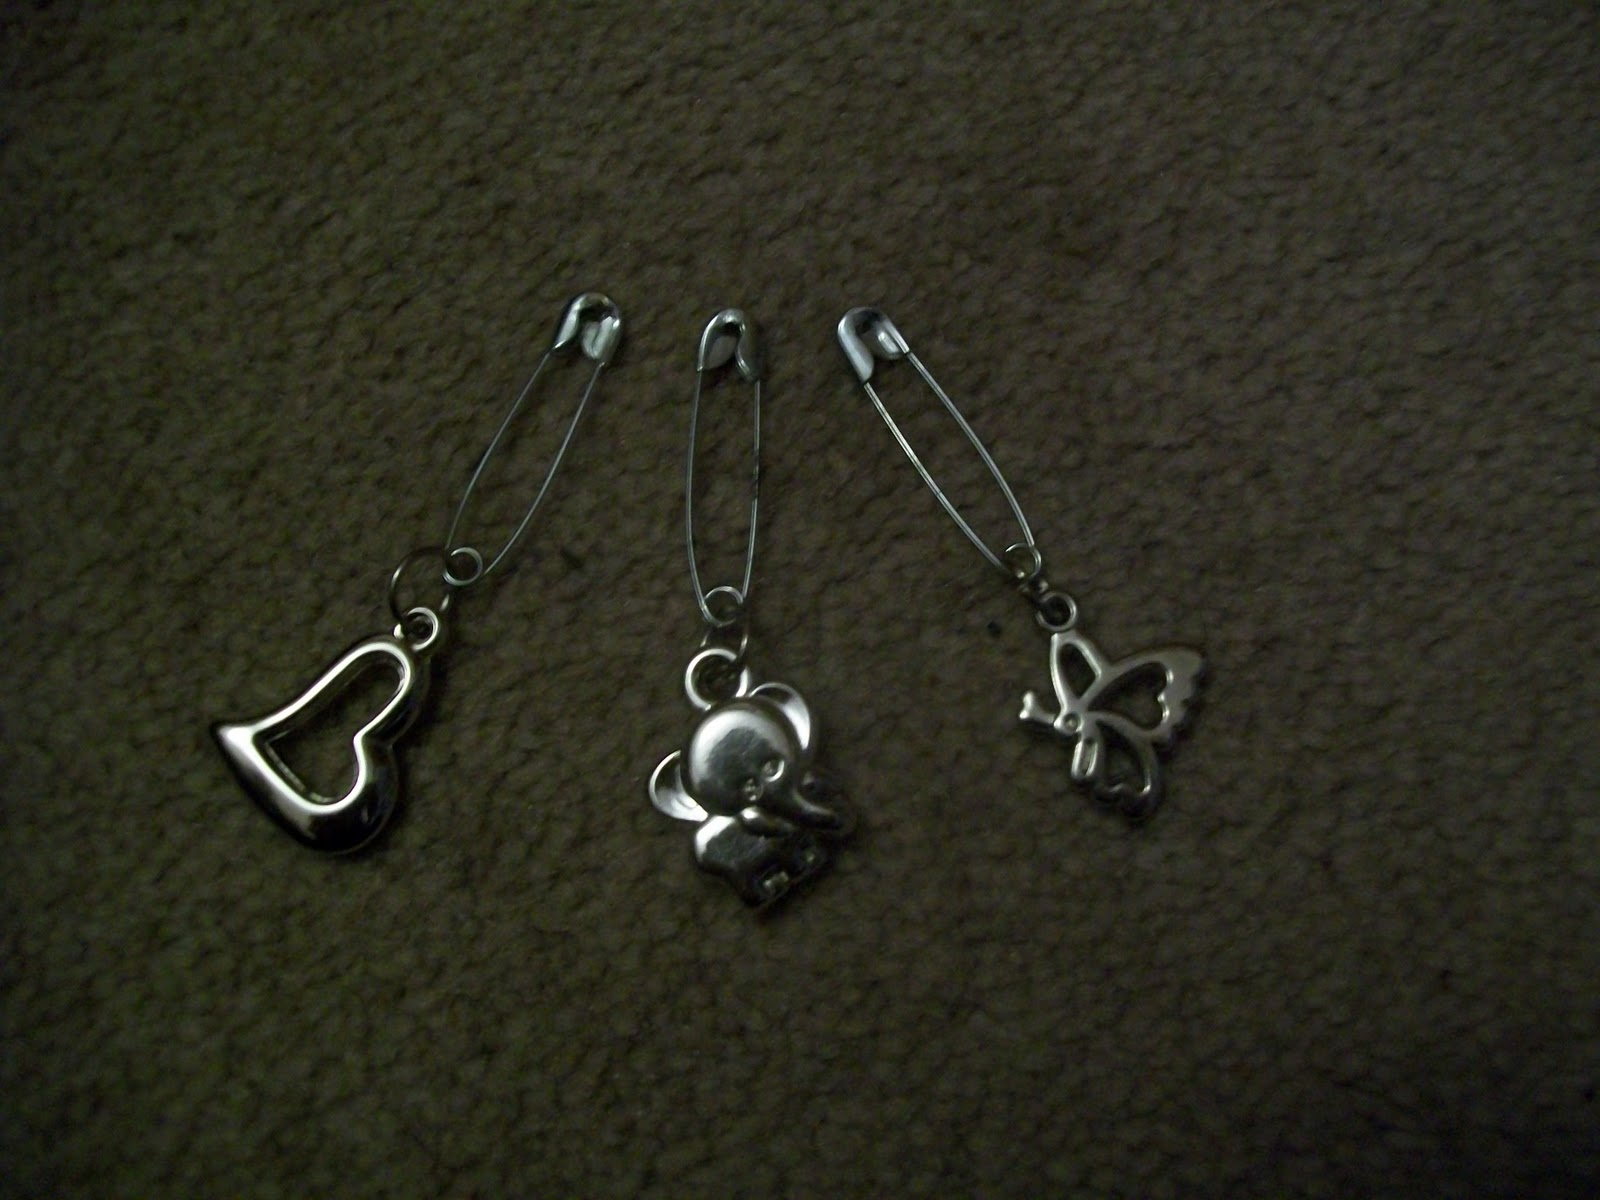 Clever ways to use stitch markers - Knitting Daily - Knitting Daily